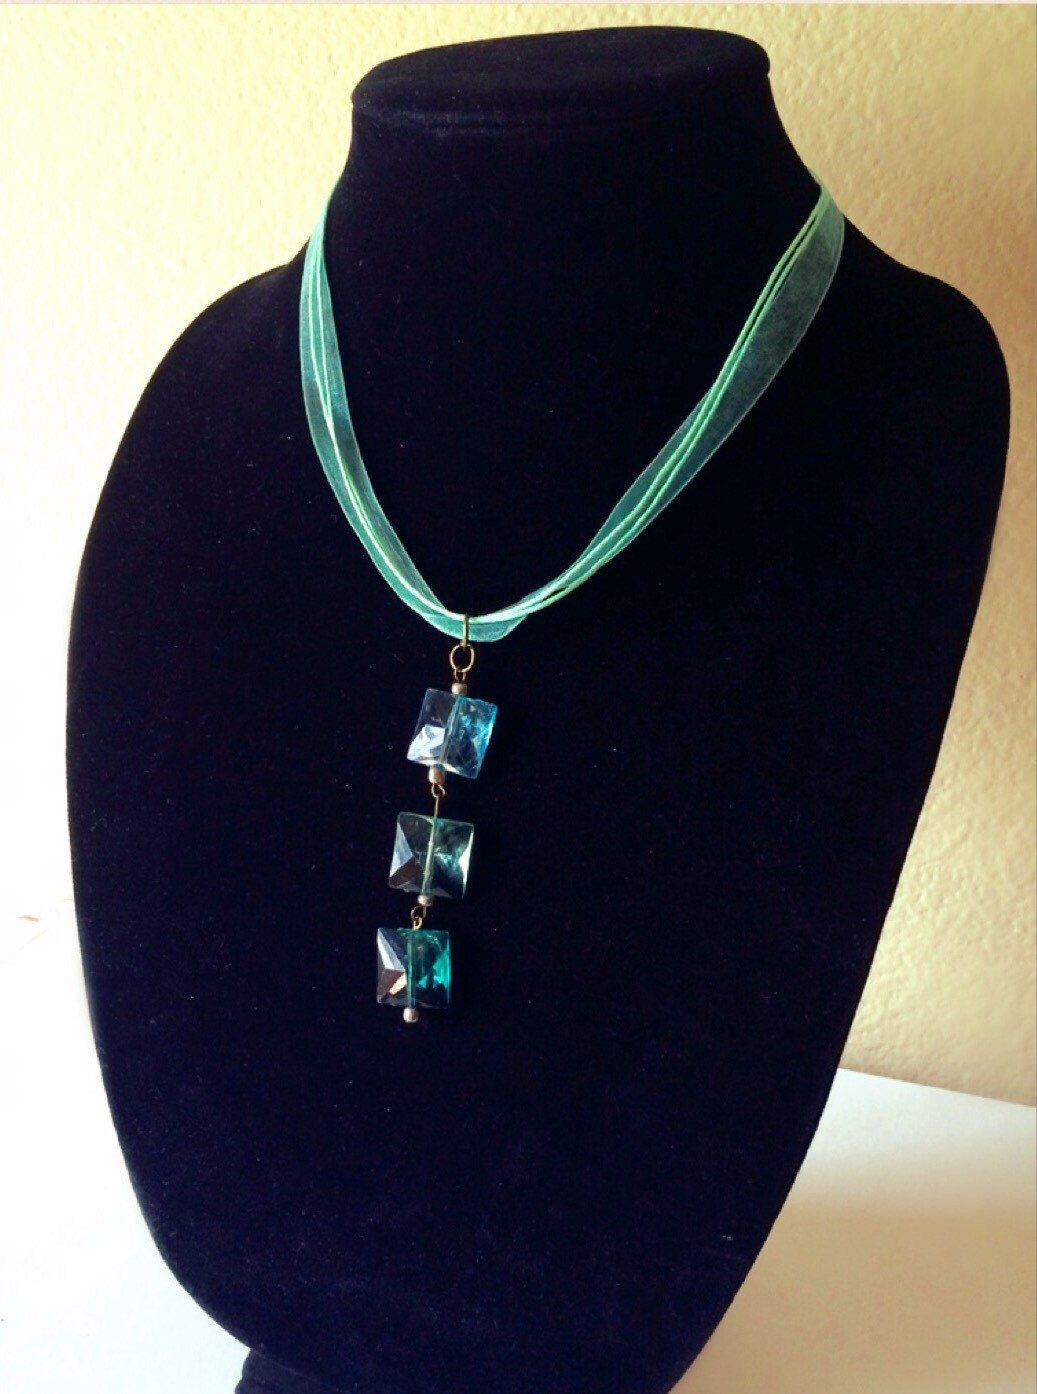 Ombré Aqua Modern Trendy Necklace And Choker Ribbon Chain, Square Pendant, Handmade Gift, For Her by Creationlily on Etsy https://www.etsy.com/listing/220071496/ombre-aqua-modern-trendy-necklace-and